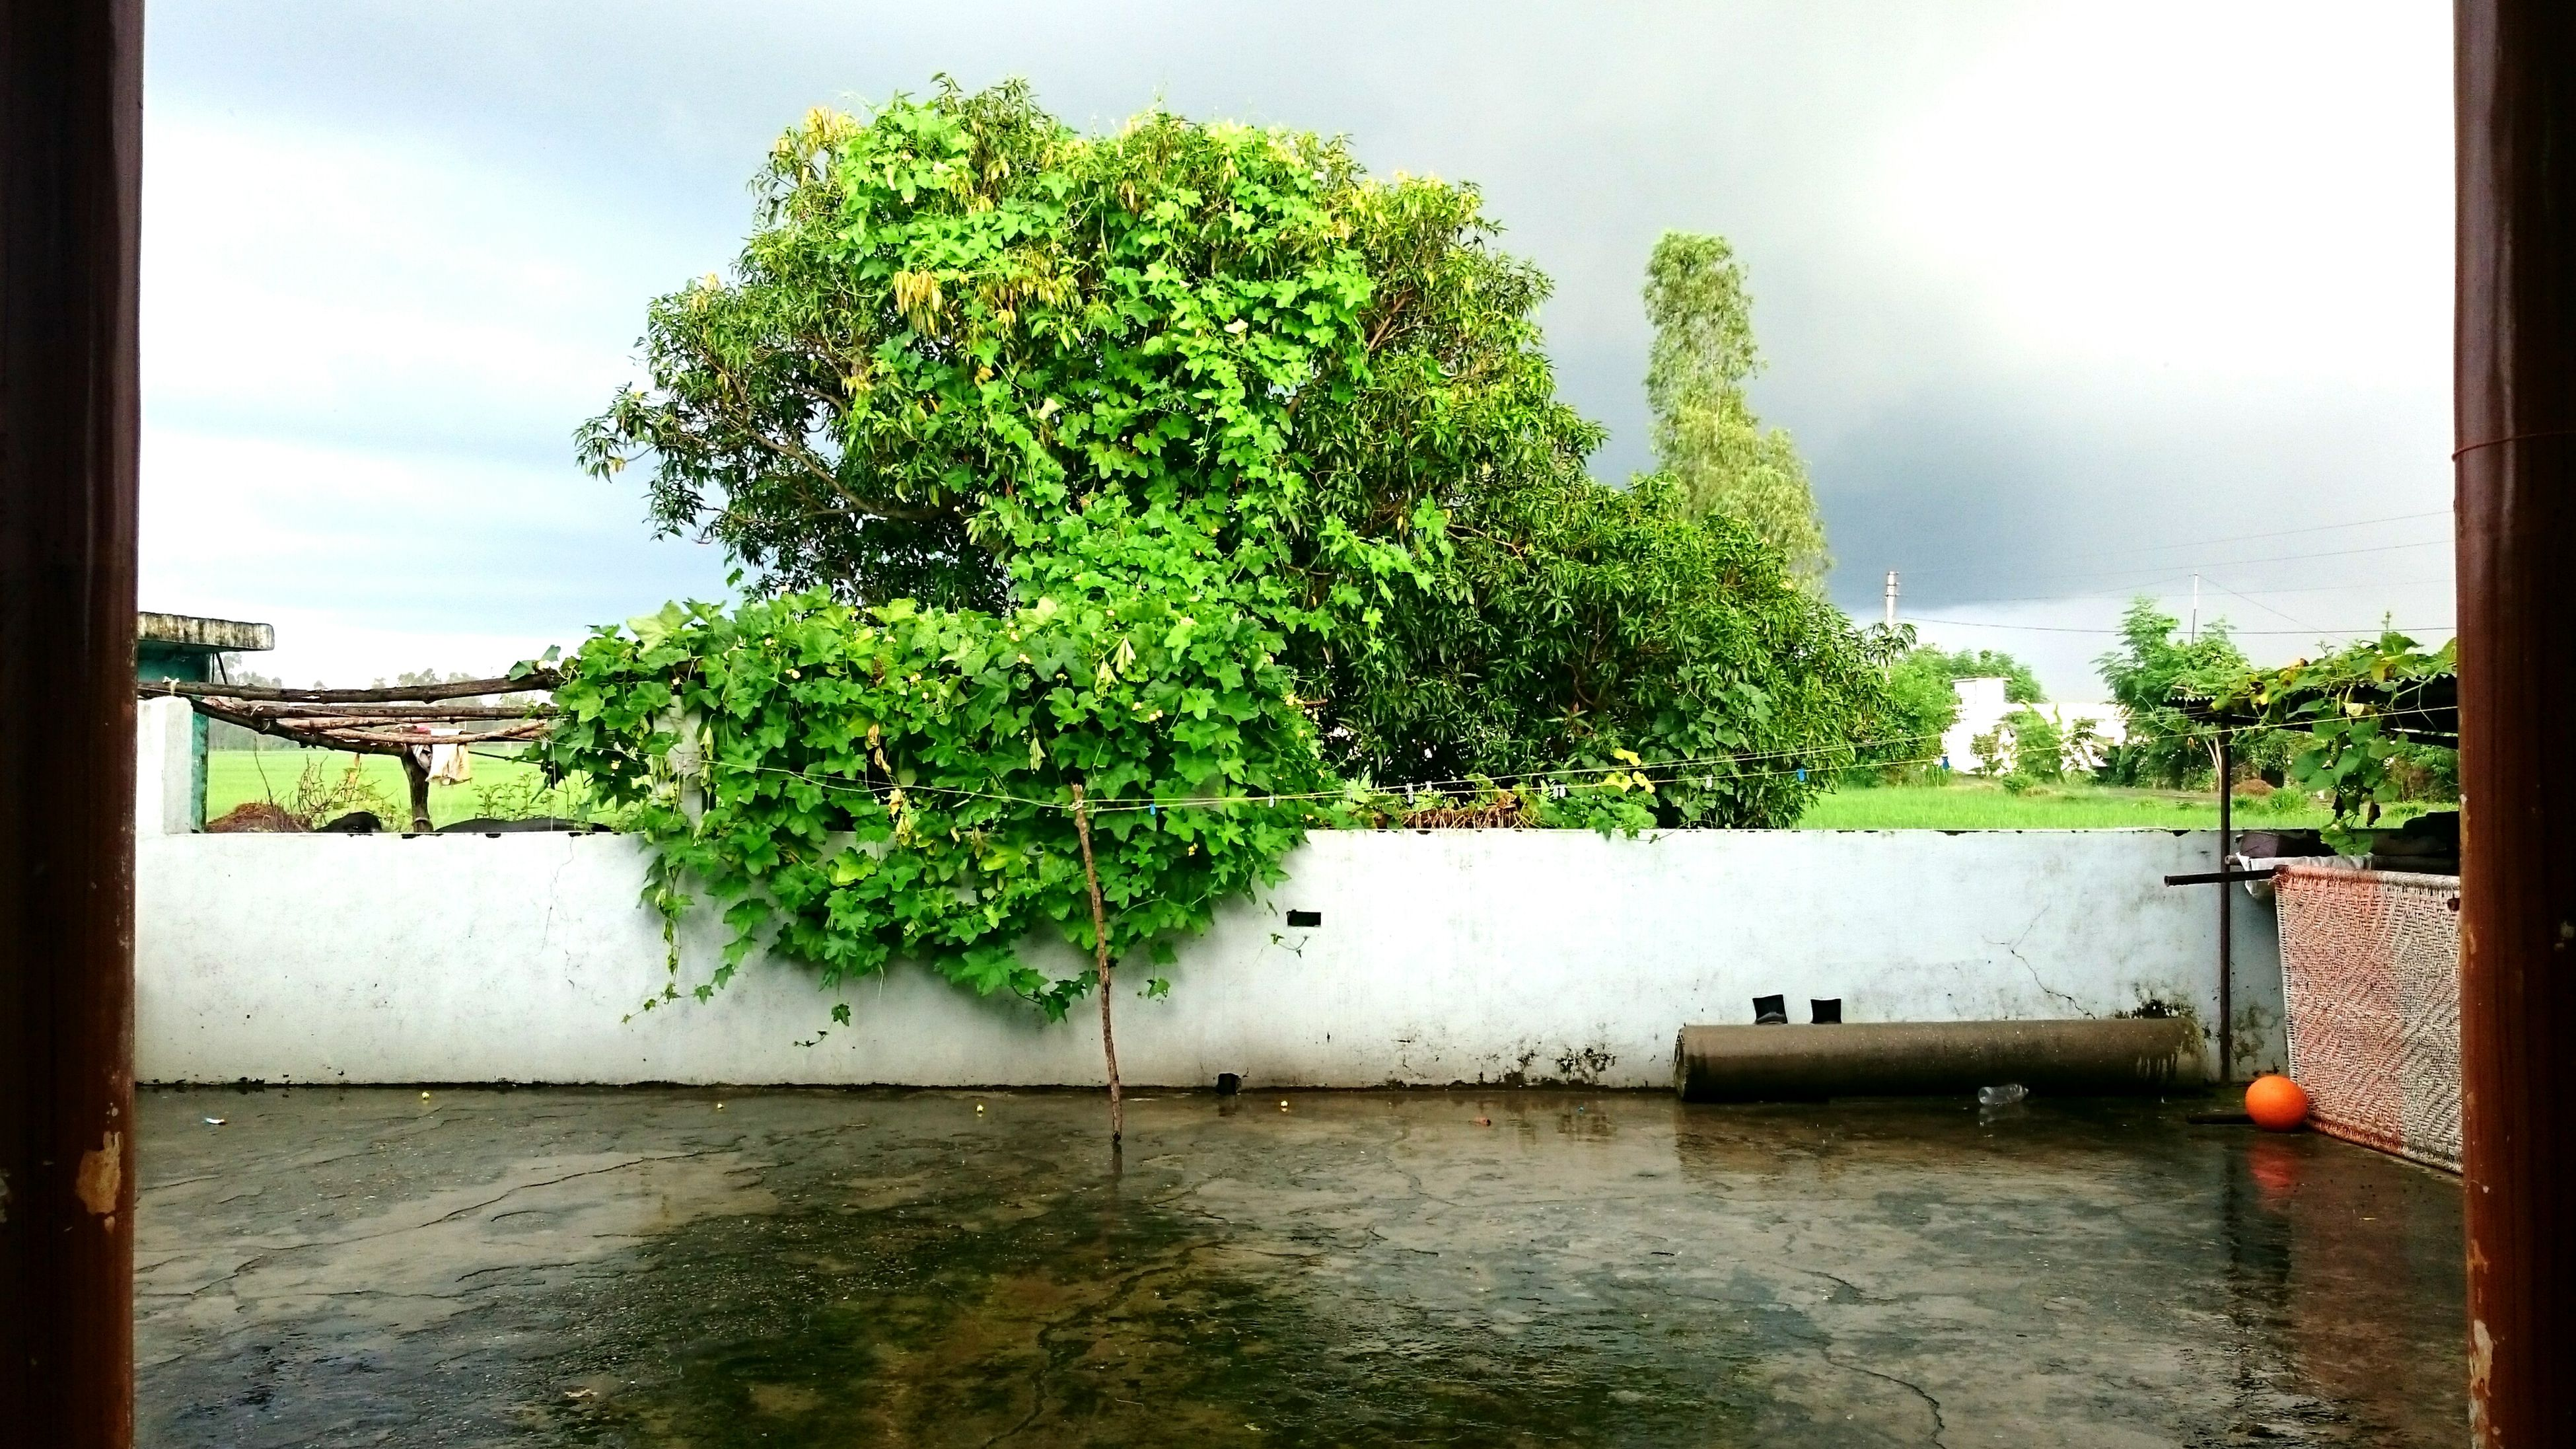 tree, water, sky, day, no people, nature, tranquility, outdoors, scenics, architecture, built structure, growth, beauty in nature, building exterior